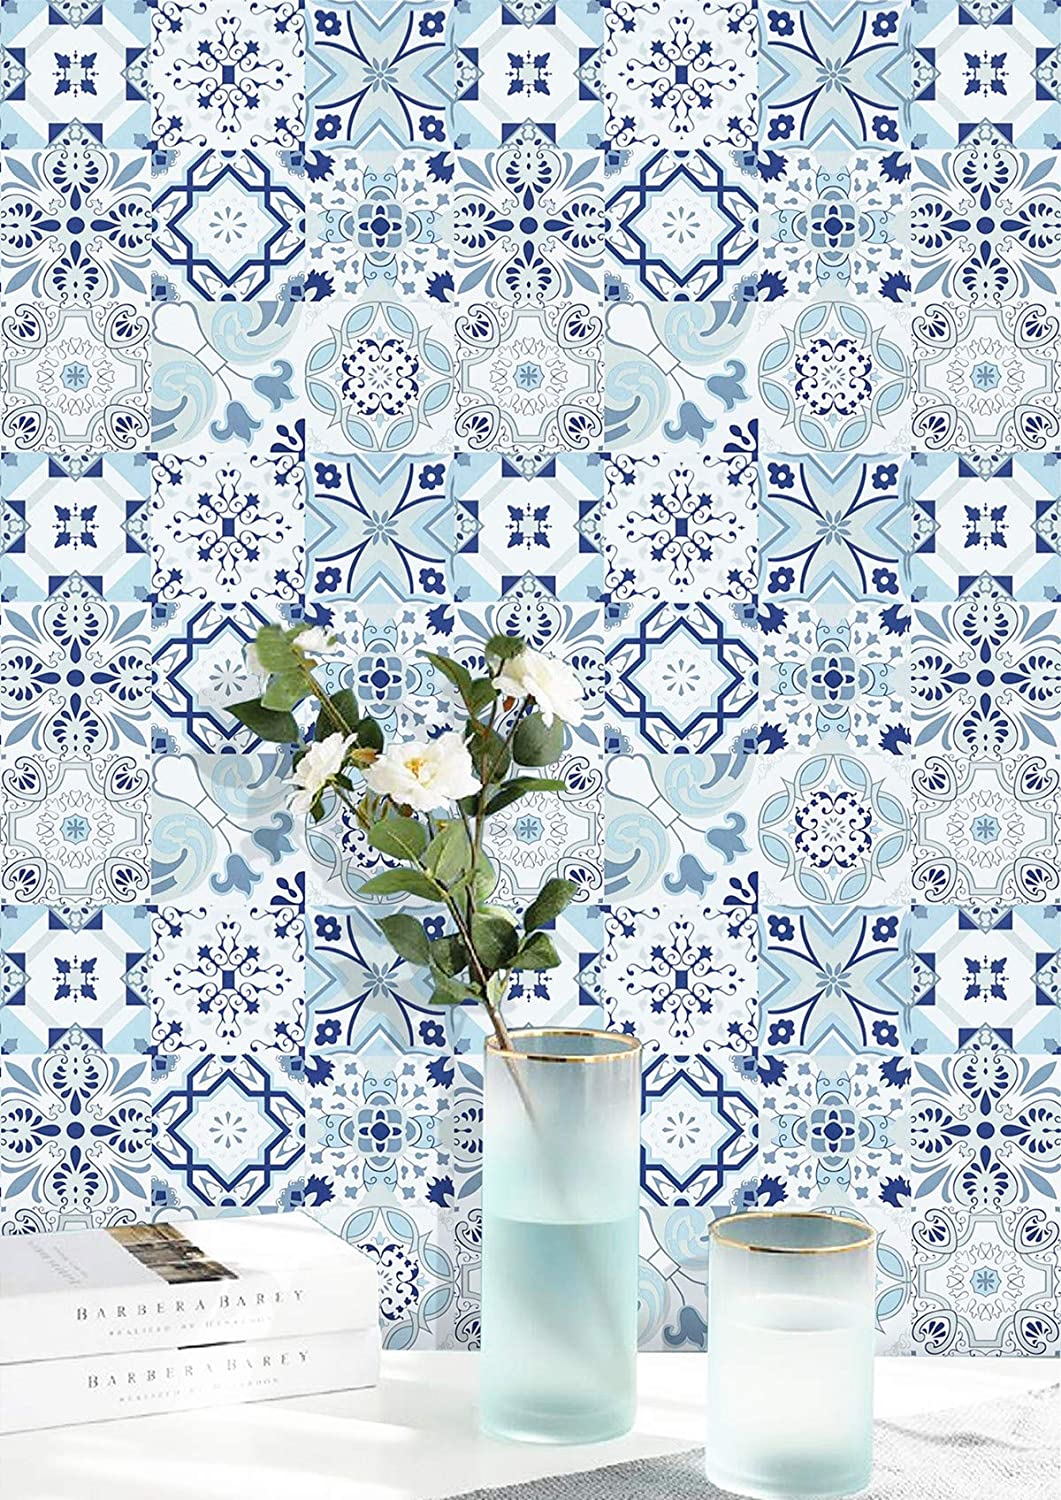 Wallpaper Blue Flower Contact Paper White Tile Peel and Stick Wallpaper Removable Wall Paper Waterproof Wall Covering Embossed Self Adhesive Wallpaper Shelf Drawer Liner Vinyl Decal Roll17.7''x78.7''